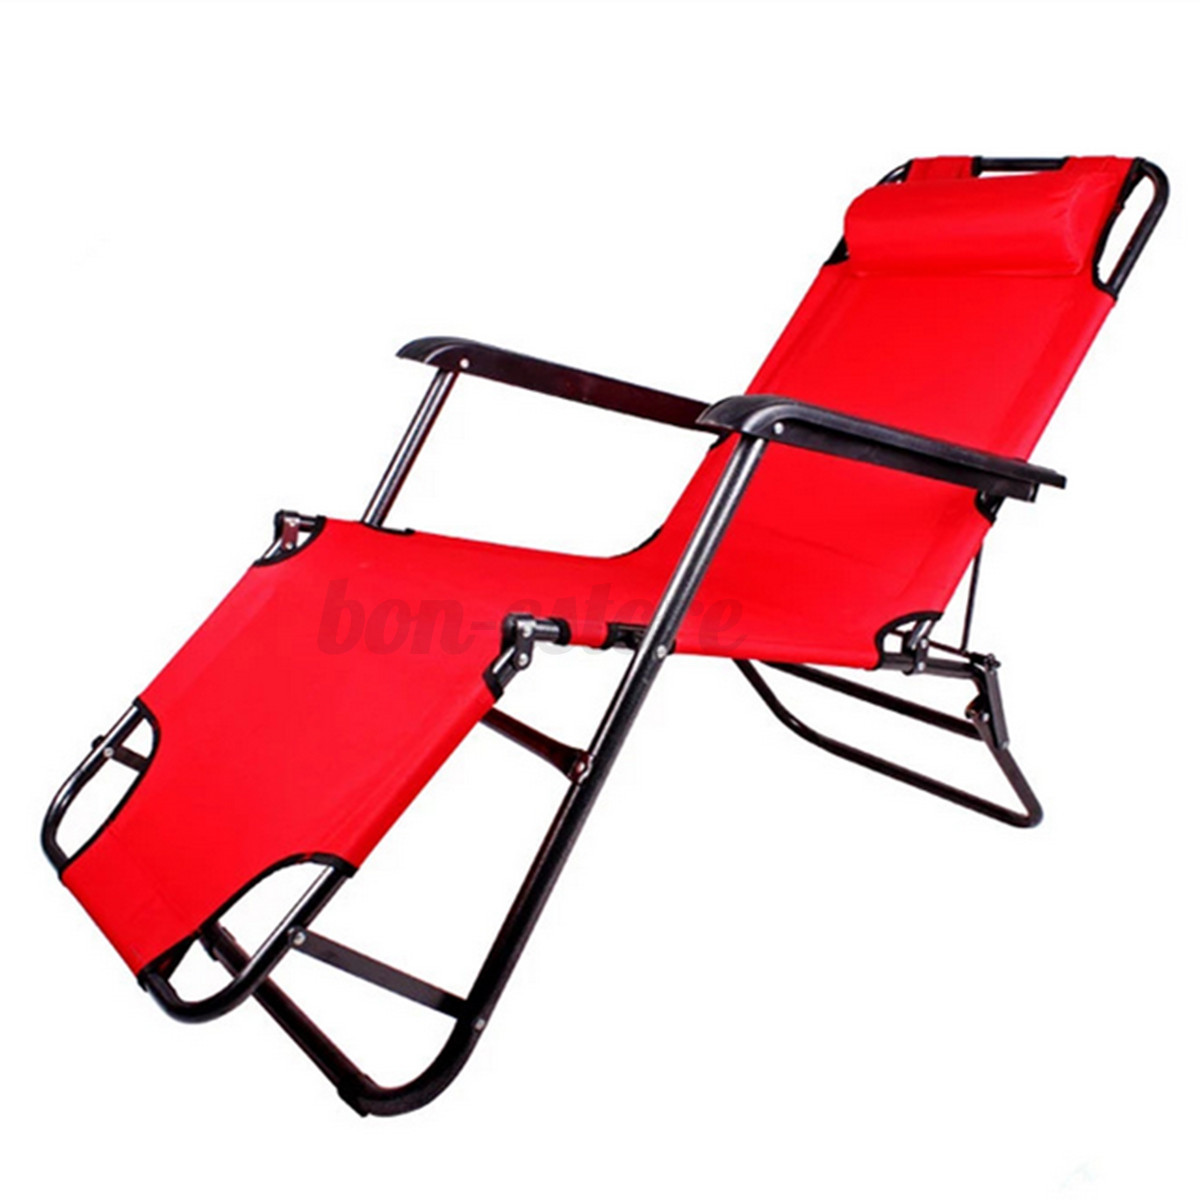 Outdoor ratchet lounger chair backpack folding backyard for Beach chaise lounge folding